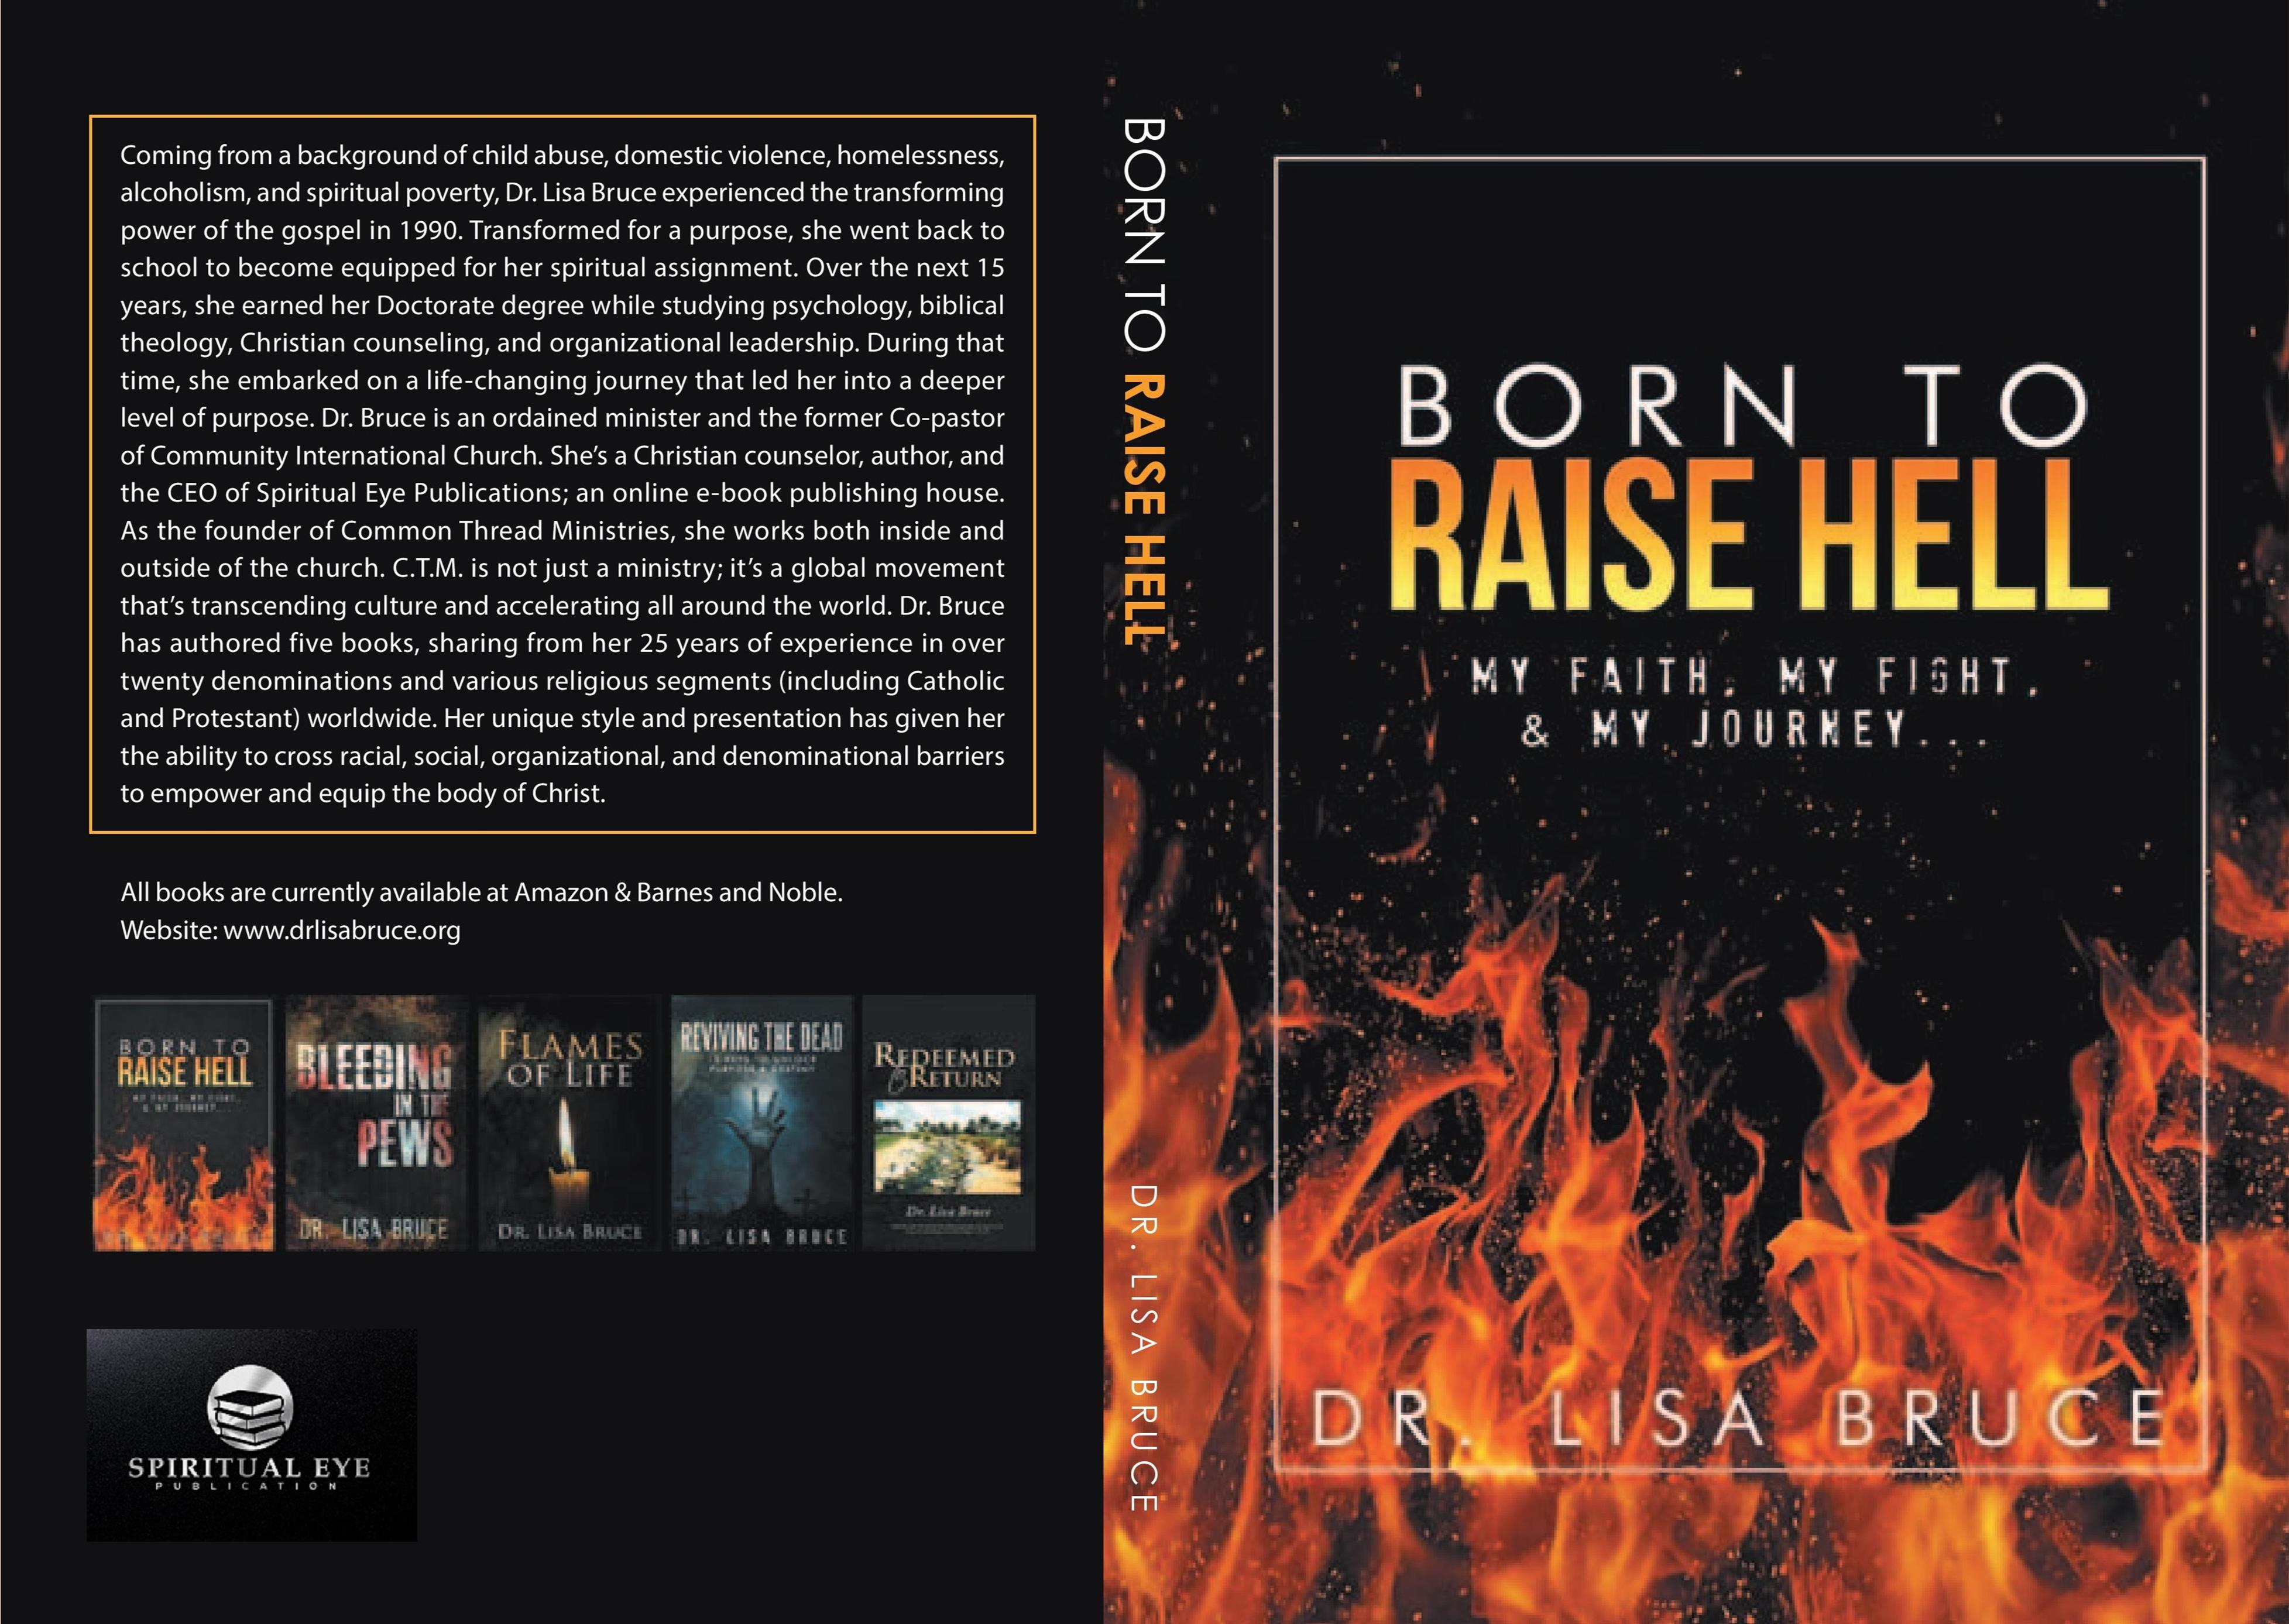 Born To Raise Hell cover image